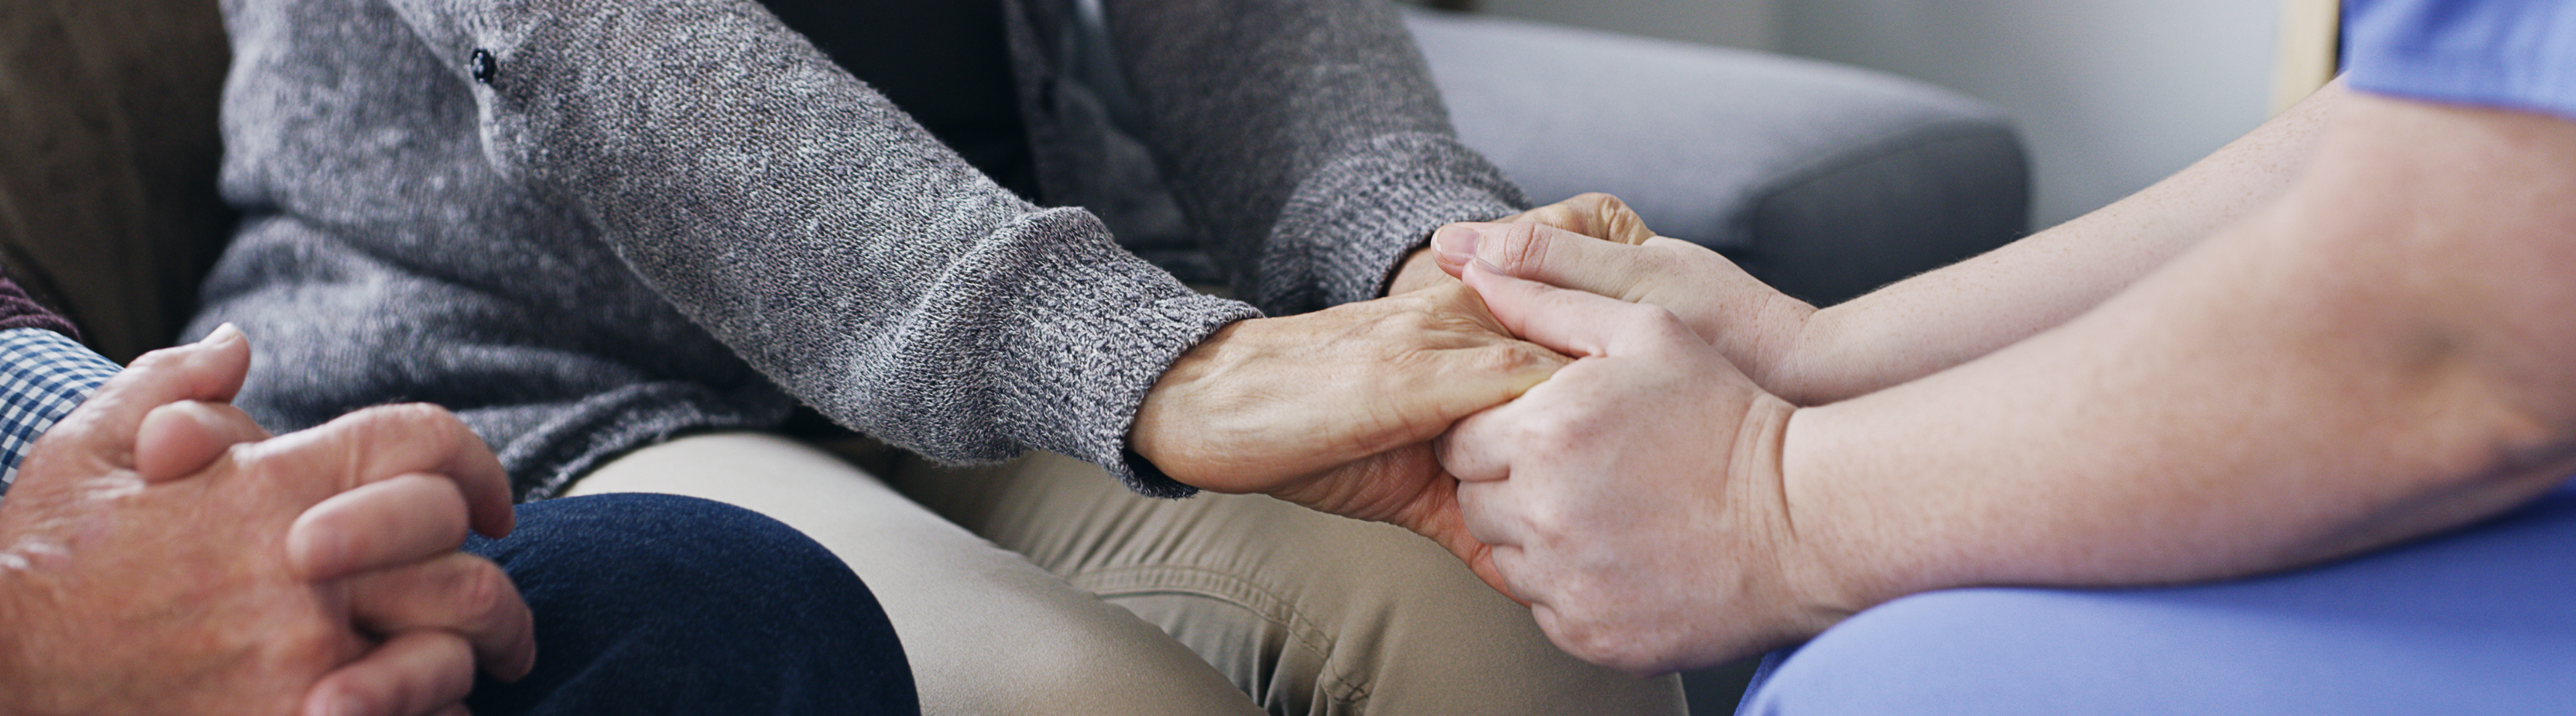 Close up image of two people holding hands